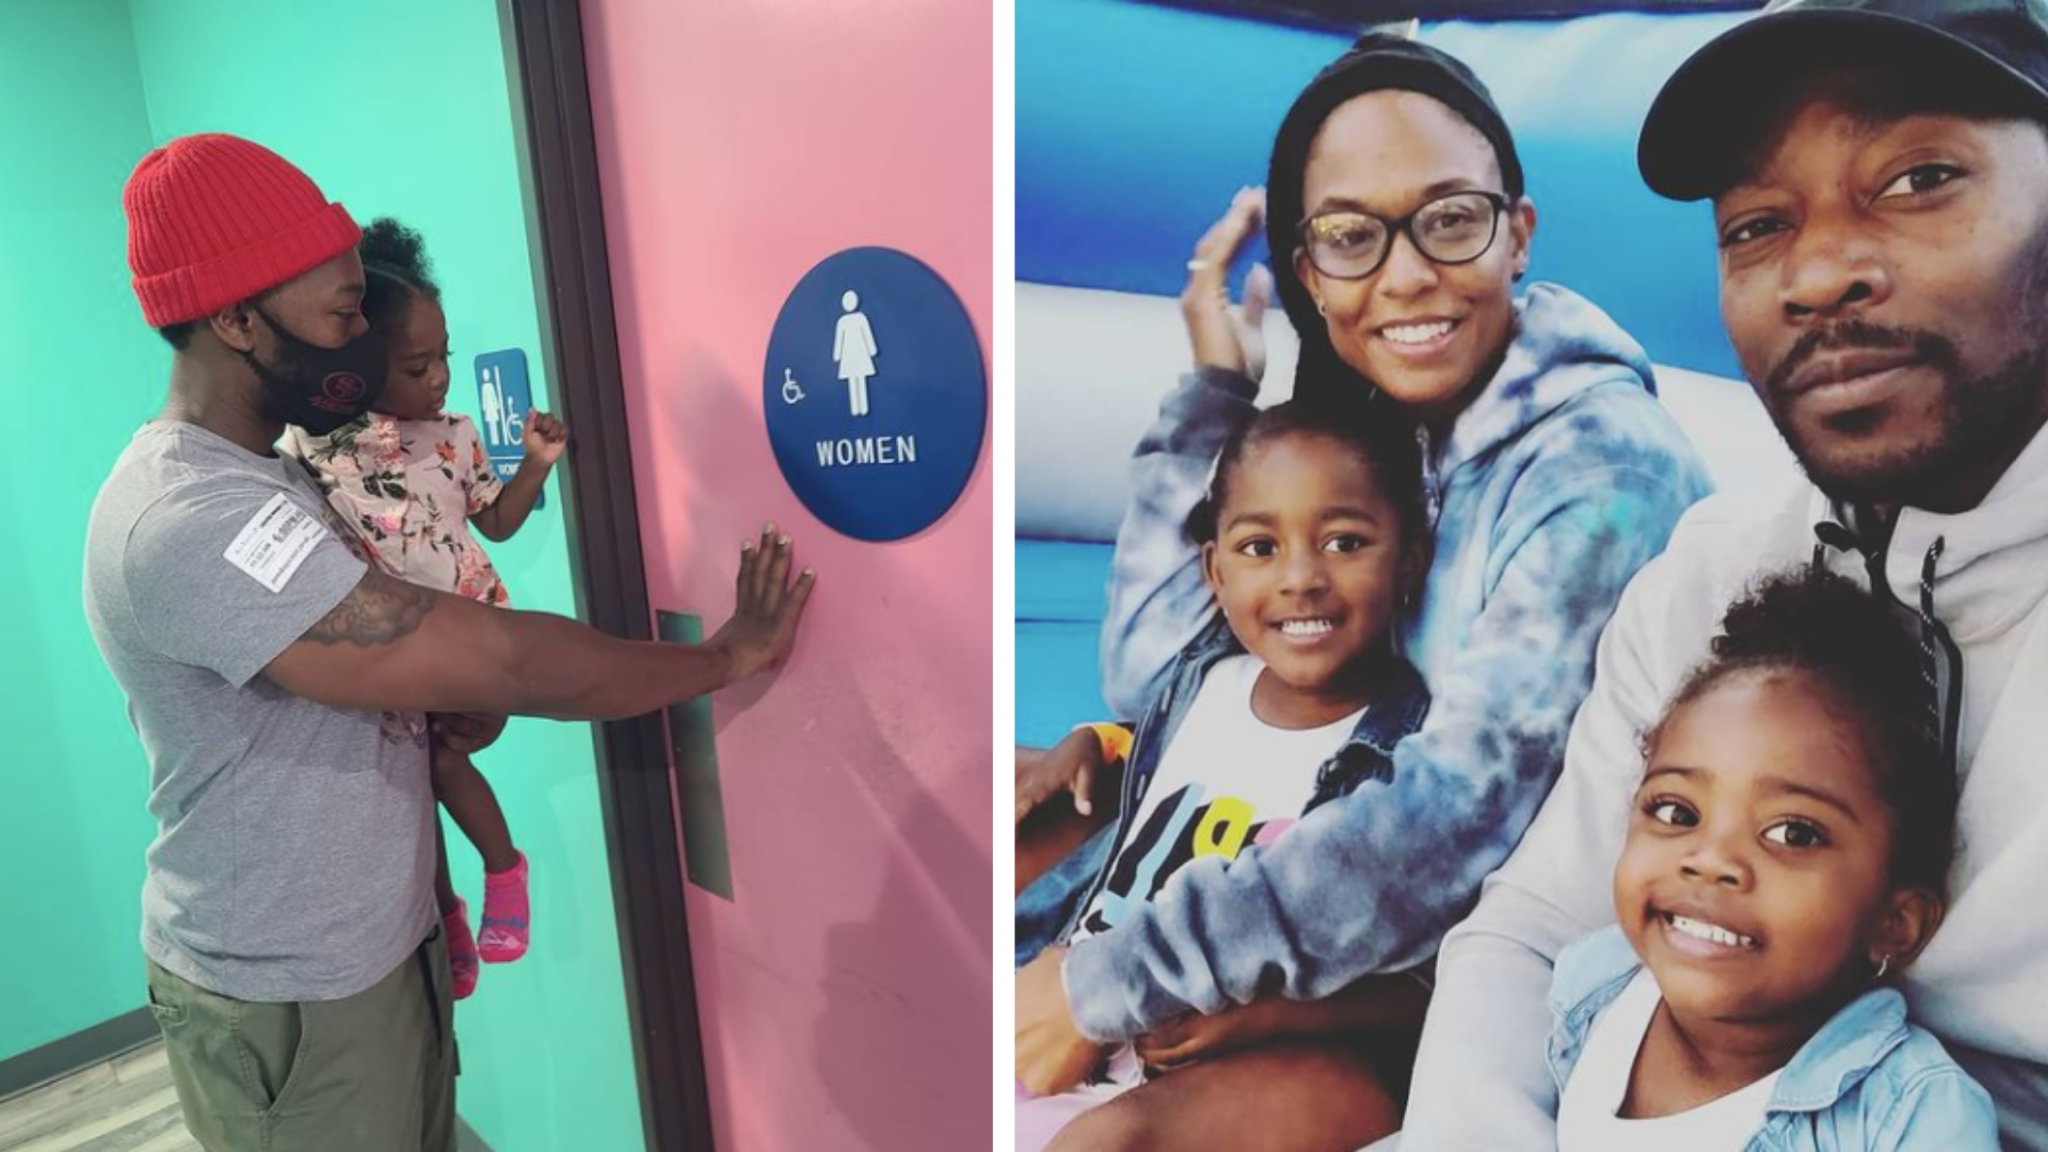 Dad Shares Why He Takes Daughters Into Women's Restrooms & Doesn't Care What Haters Think